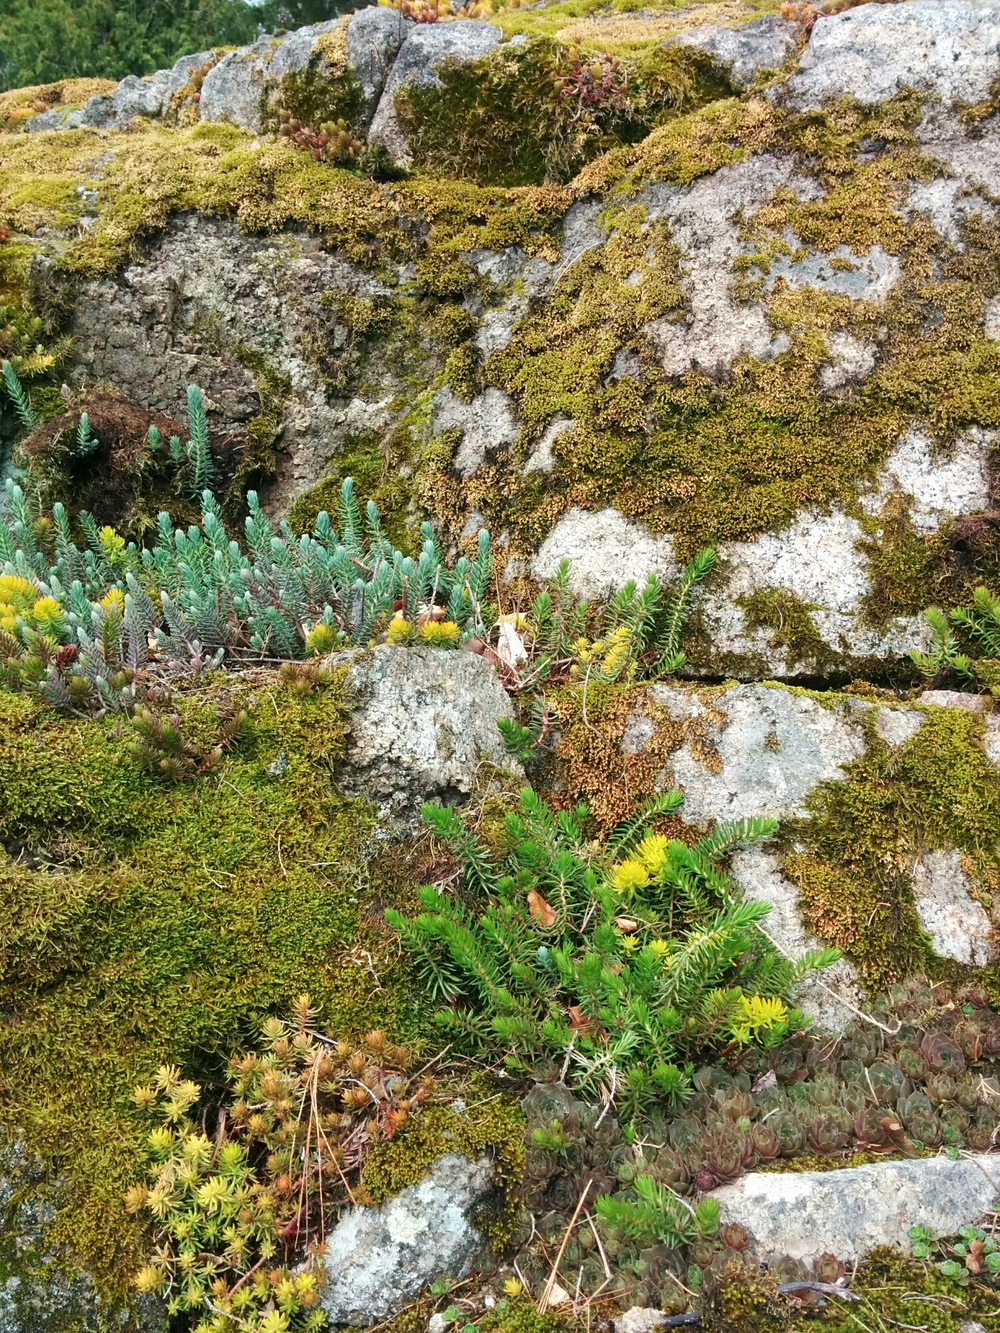 Sedum planted in the crevice of a stone outcropping.